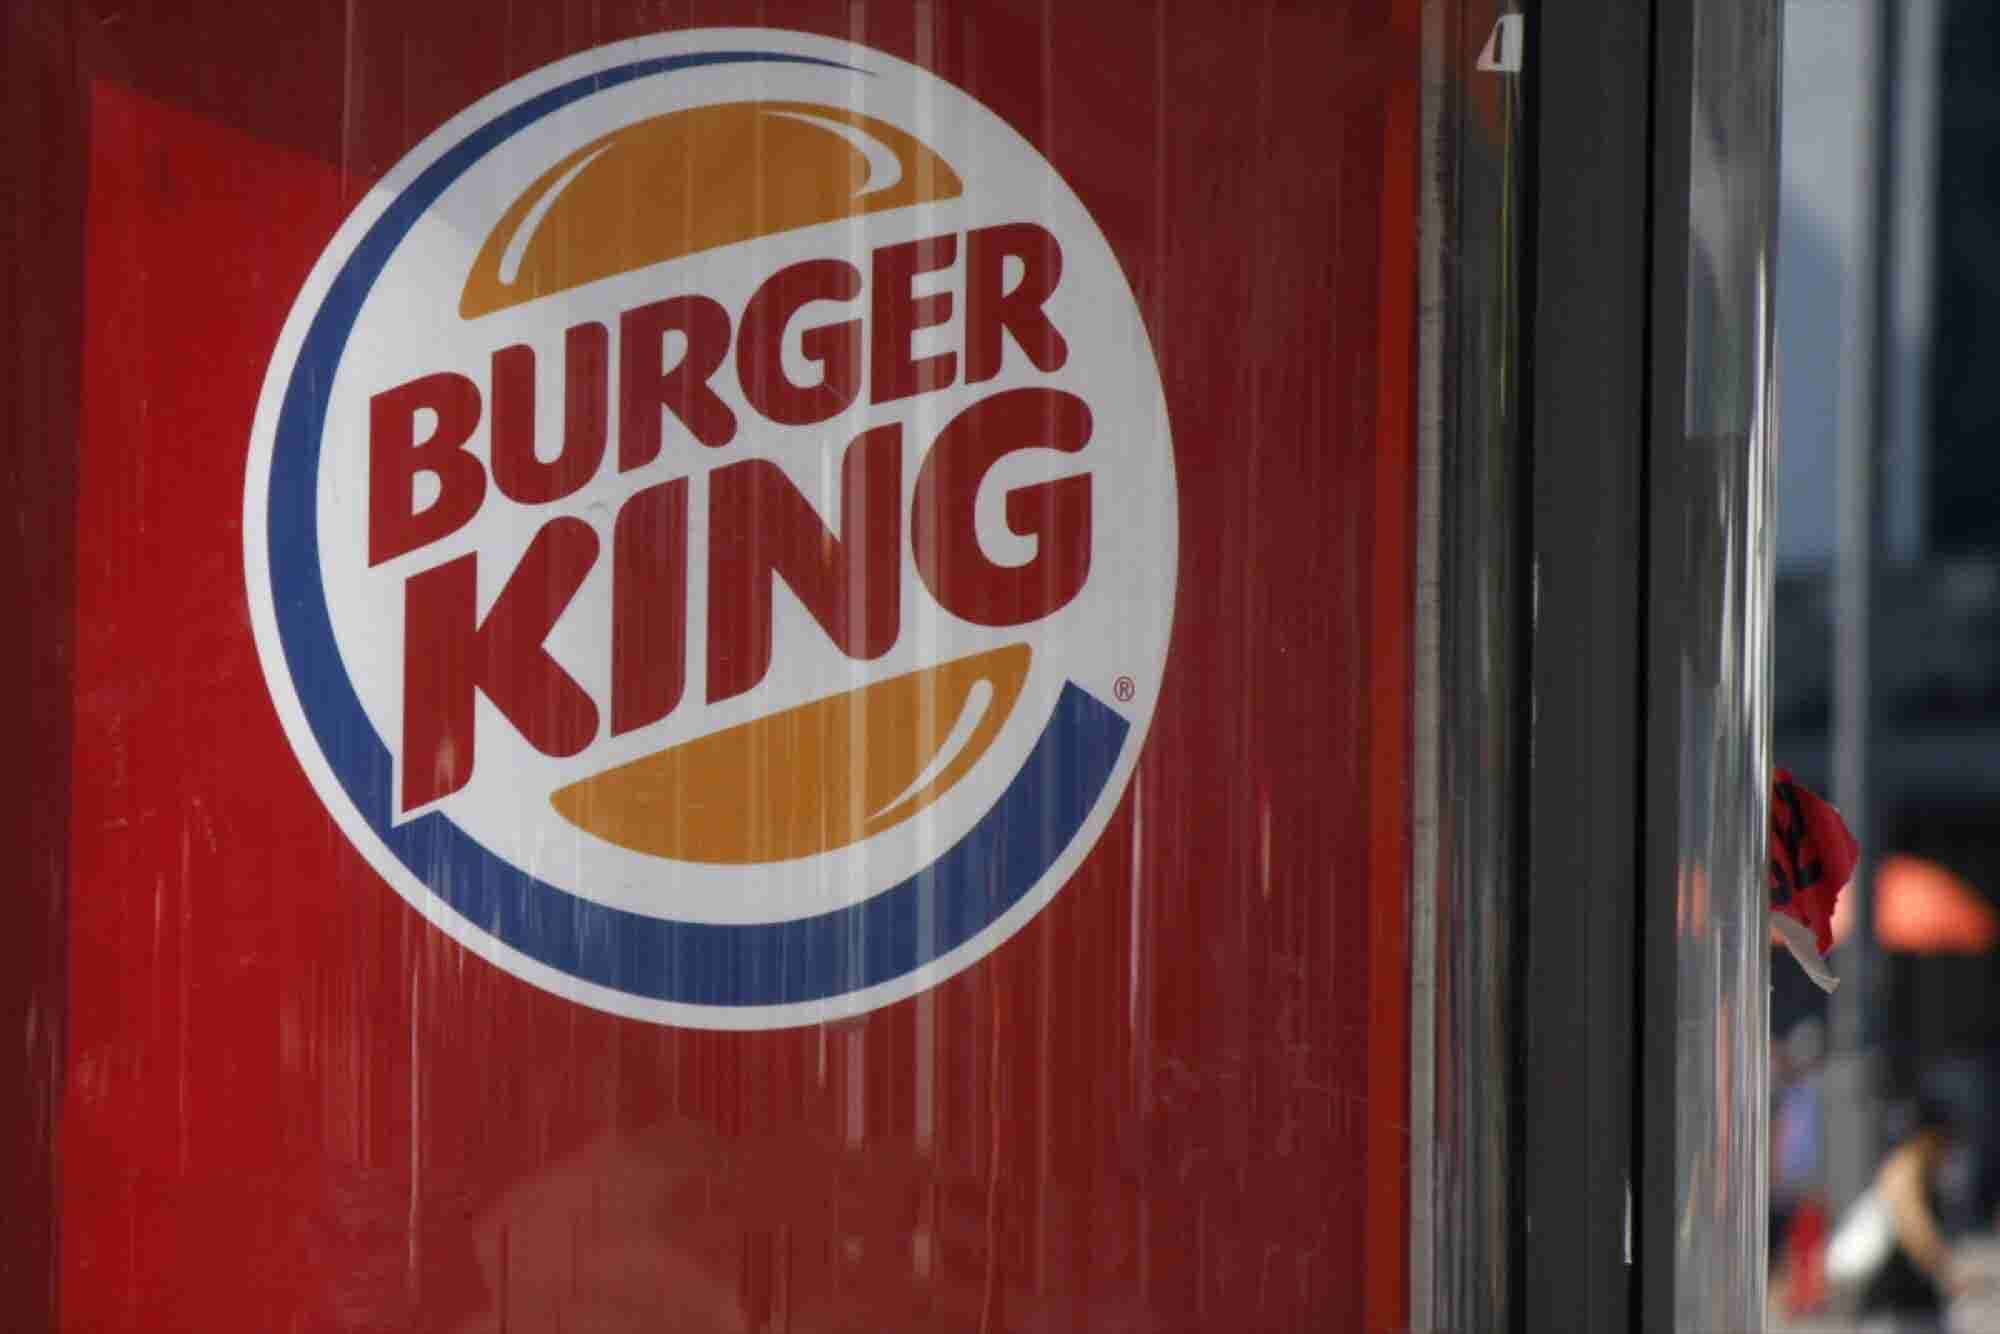 Burger King Will Let You Swap Unwanted Gifts for a Whopper